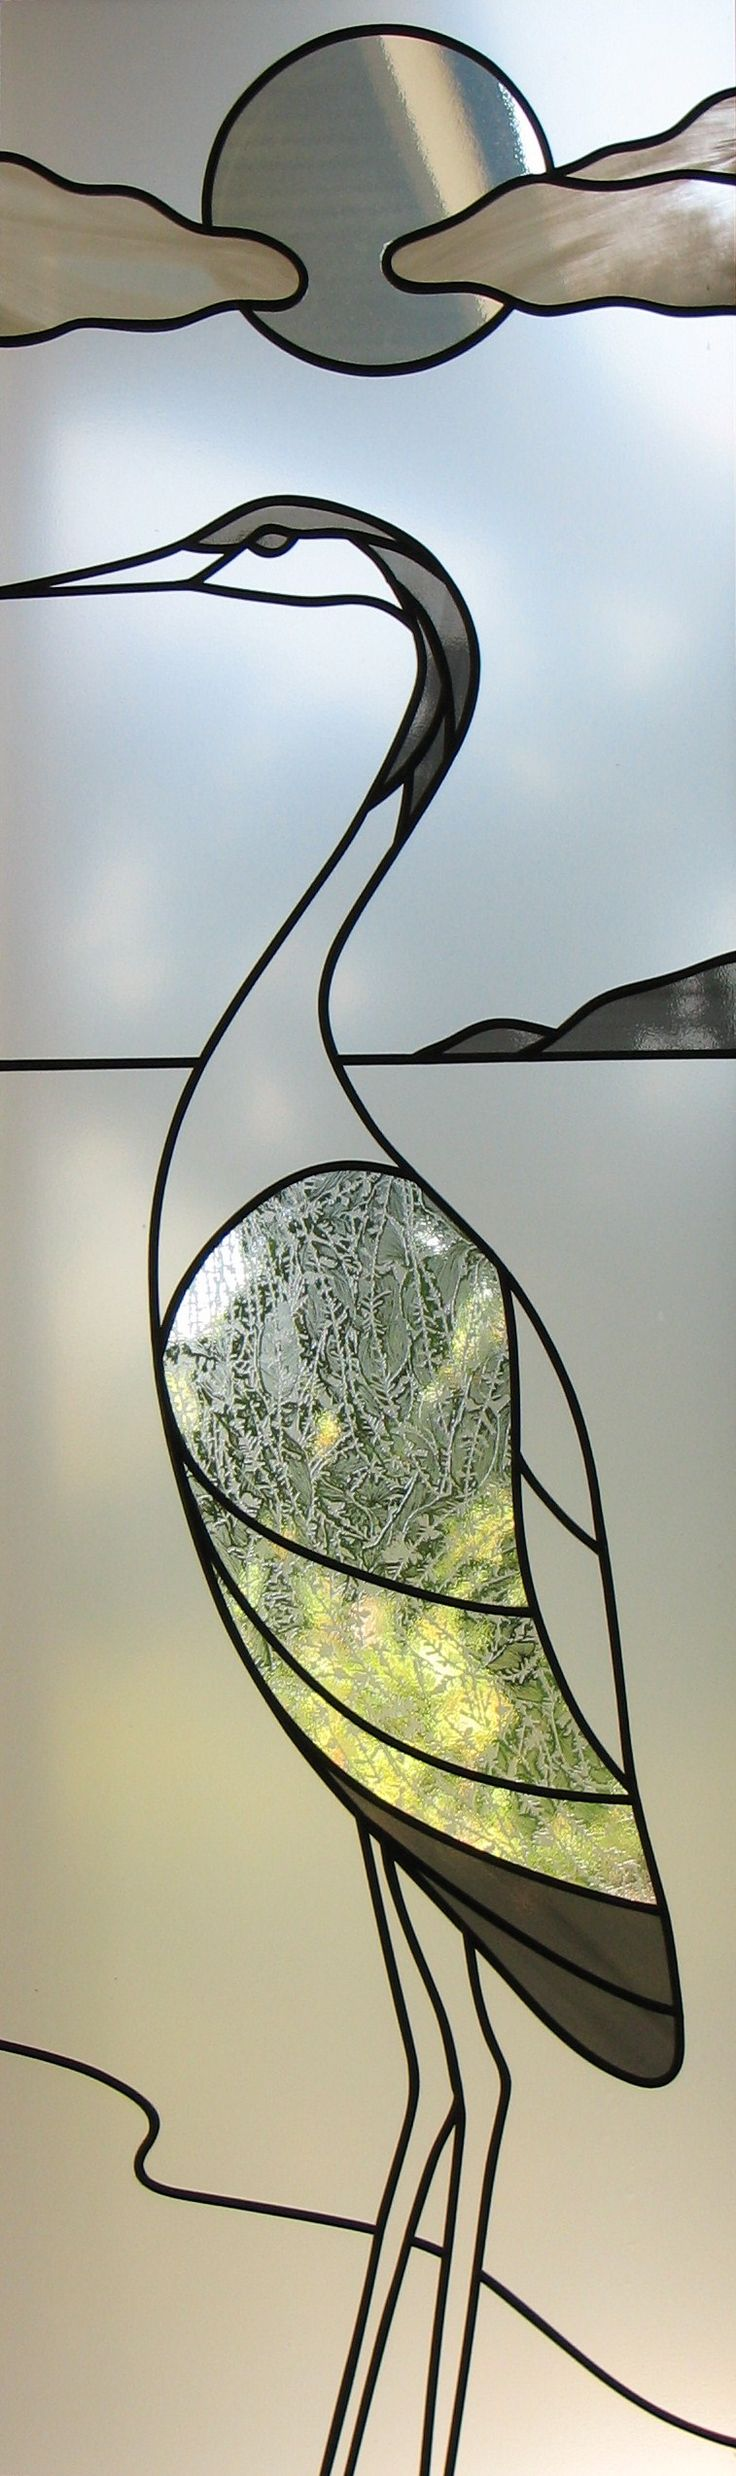 Best 25 stained glass door ideas on pinterest home door design they are such inspiring birds stained glass heron in clear textures awesome front door for a beach house eventelaan Gallery